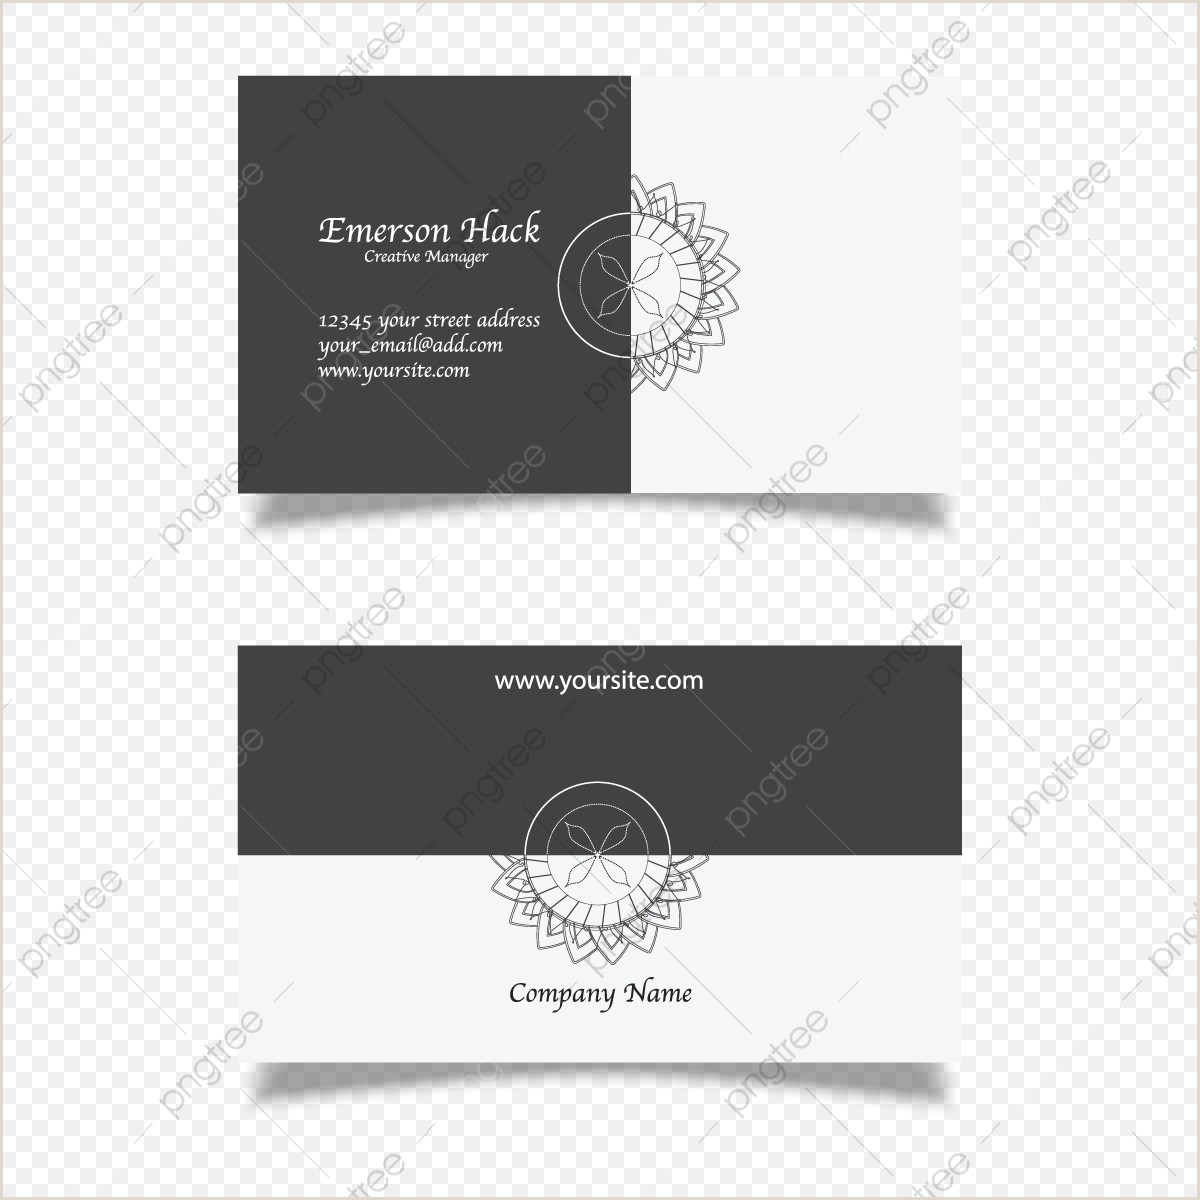 Black And White Business Card Template Black And White Business Card Png